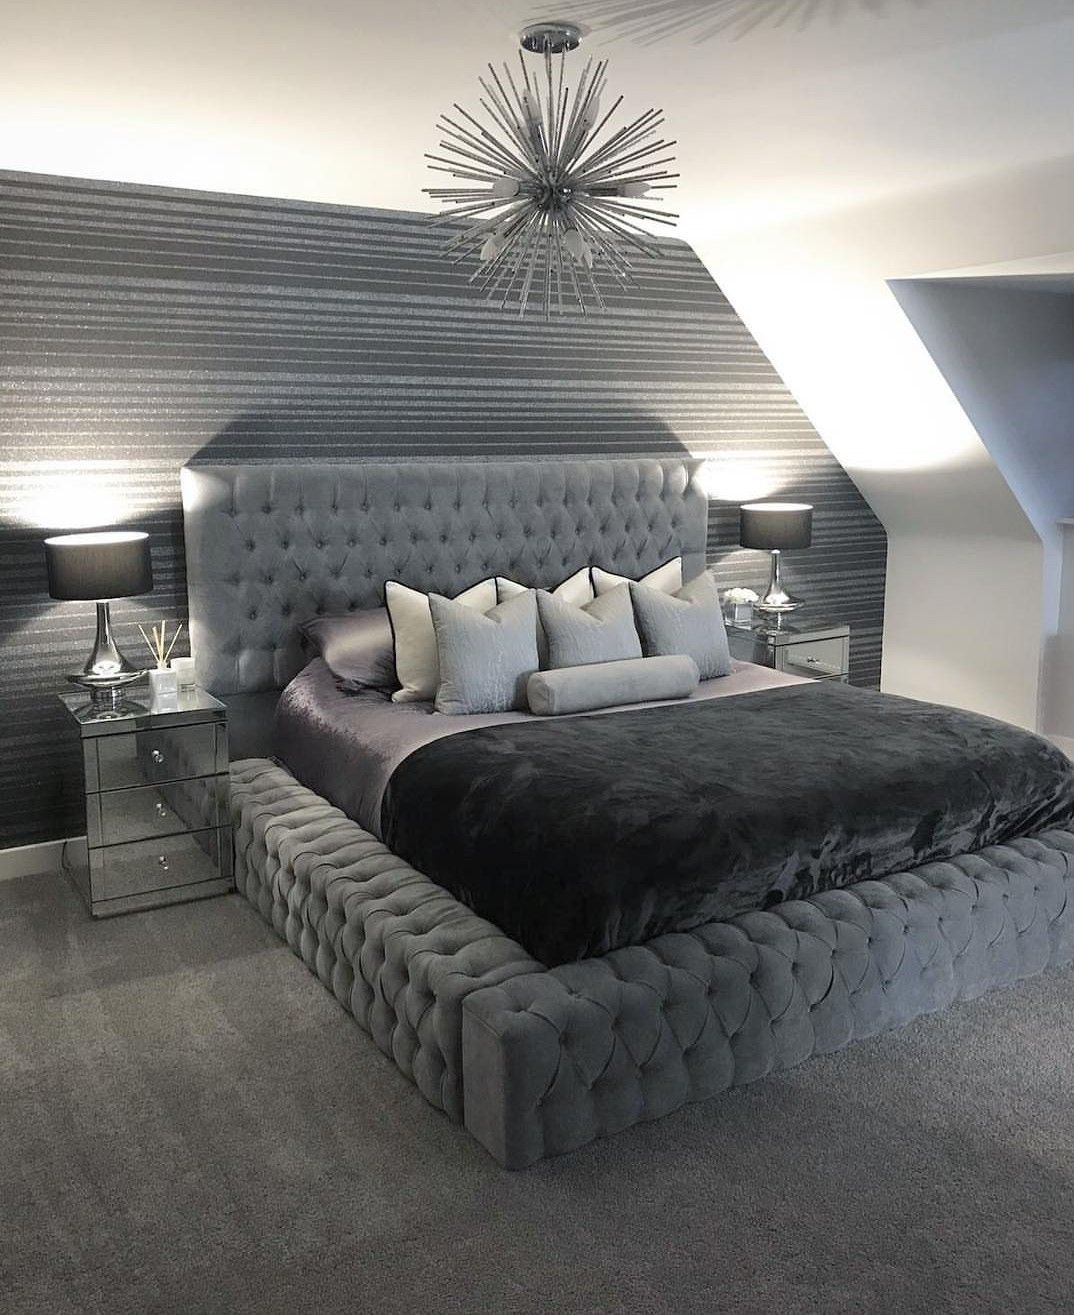 pinterest xosarahxbethxo simple bedroom design on discover ideas about master dream bedroom id=86142